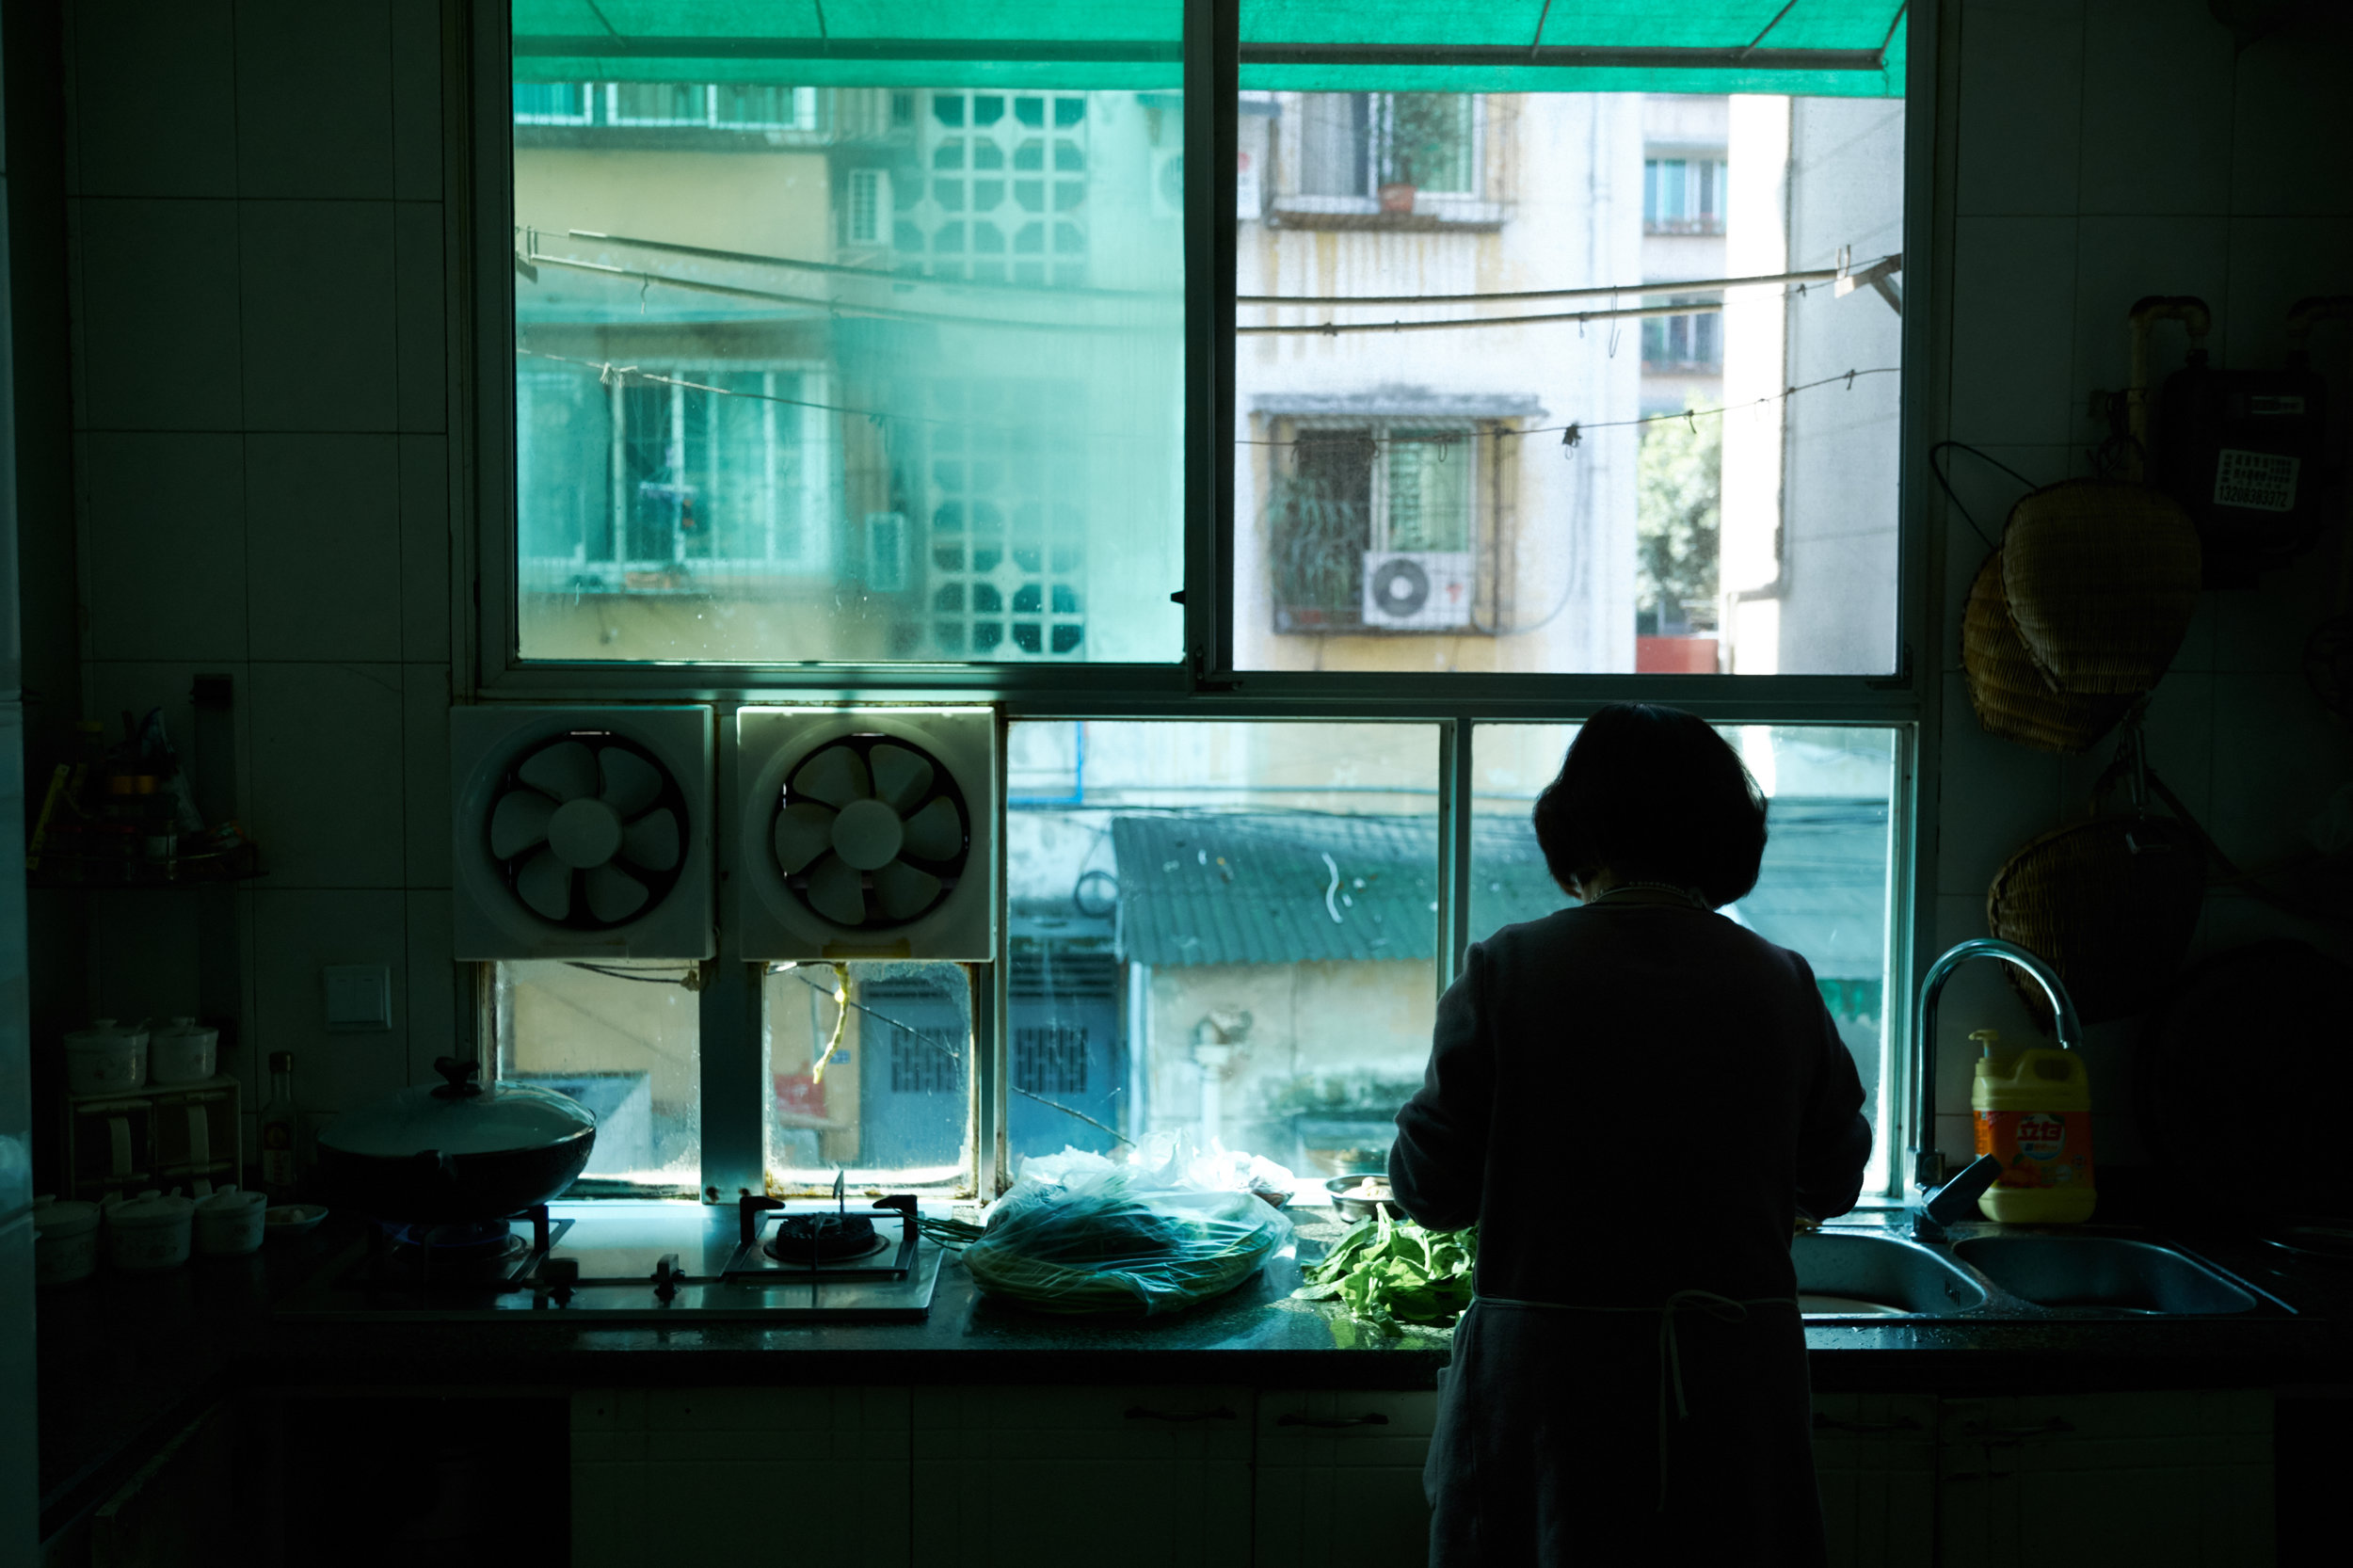 My grandparent's kitchen in Guanghan